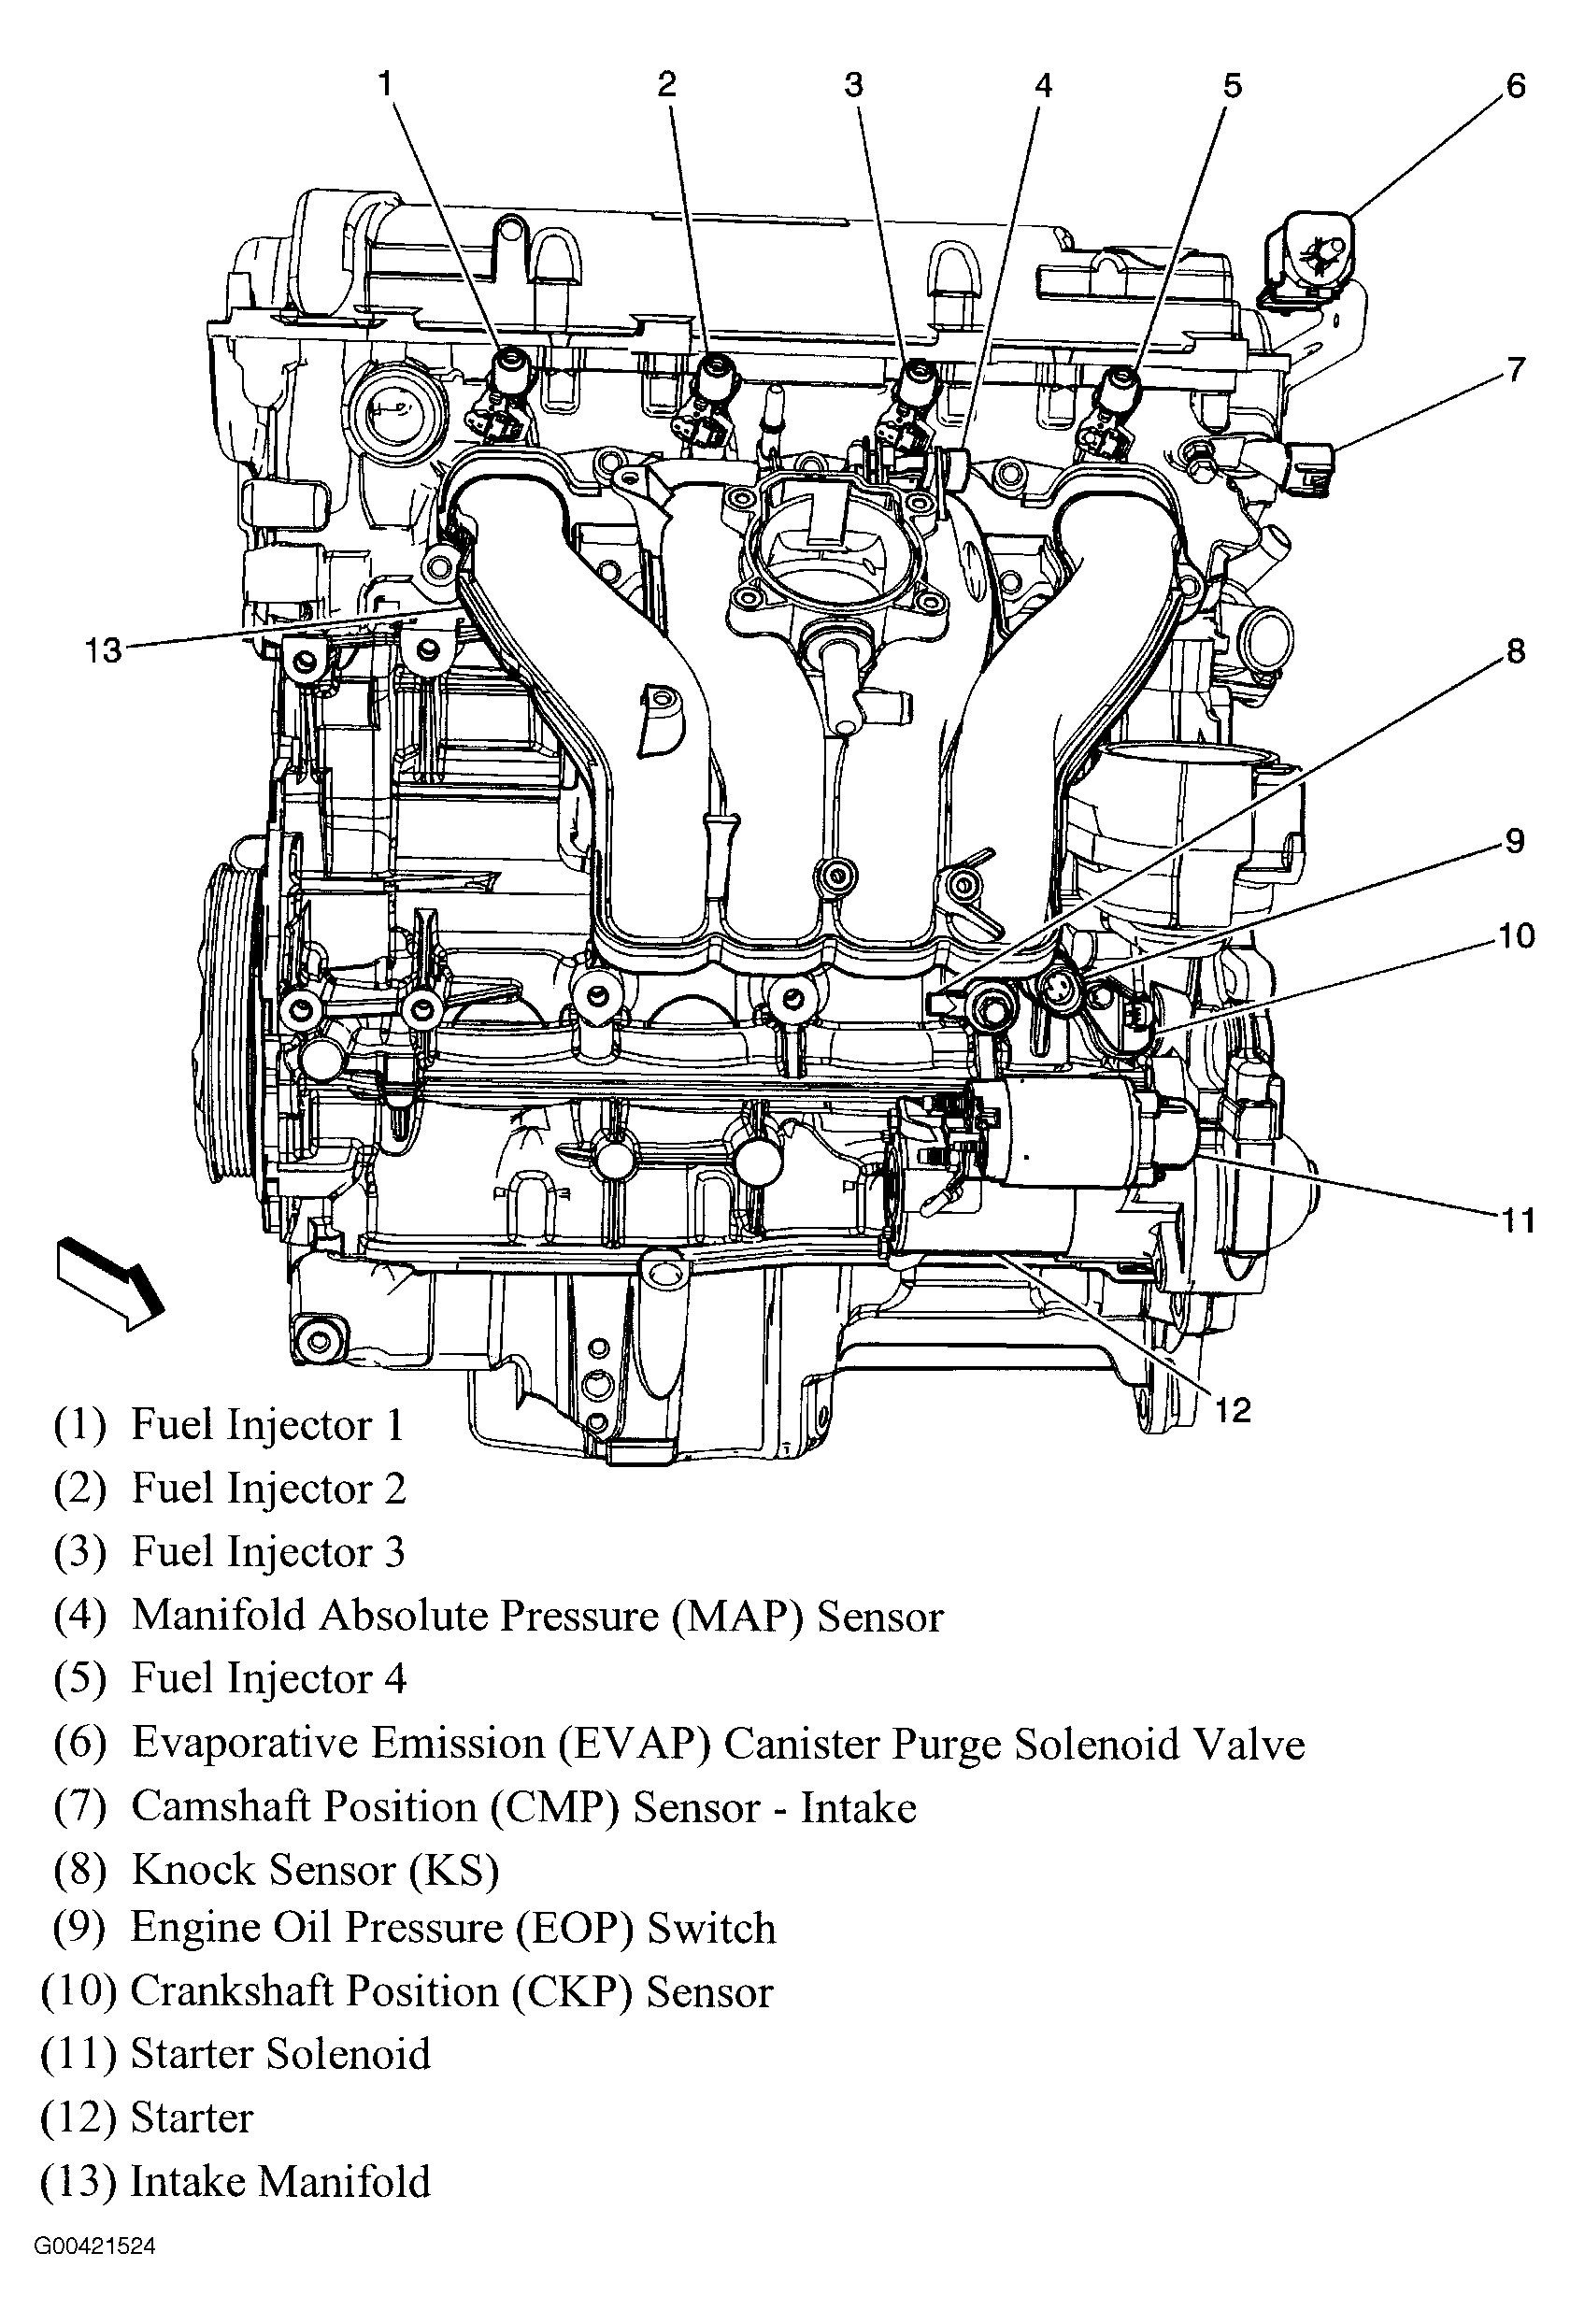 pontiac v6 engine diagram schematics wiring diagrams u2022 rh seniorlivinguniversity co 2010 Cobalt Wiring-Diagram Chevy Headlight Switch Wiring Diagram